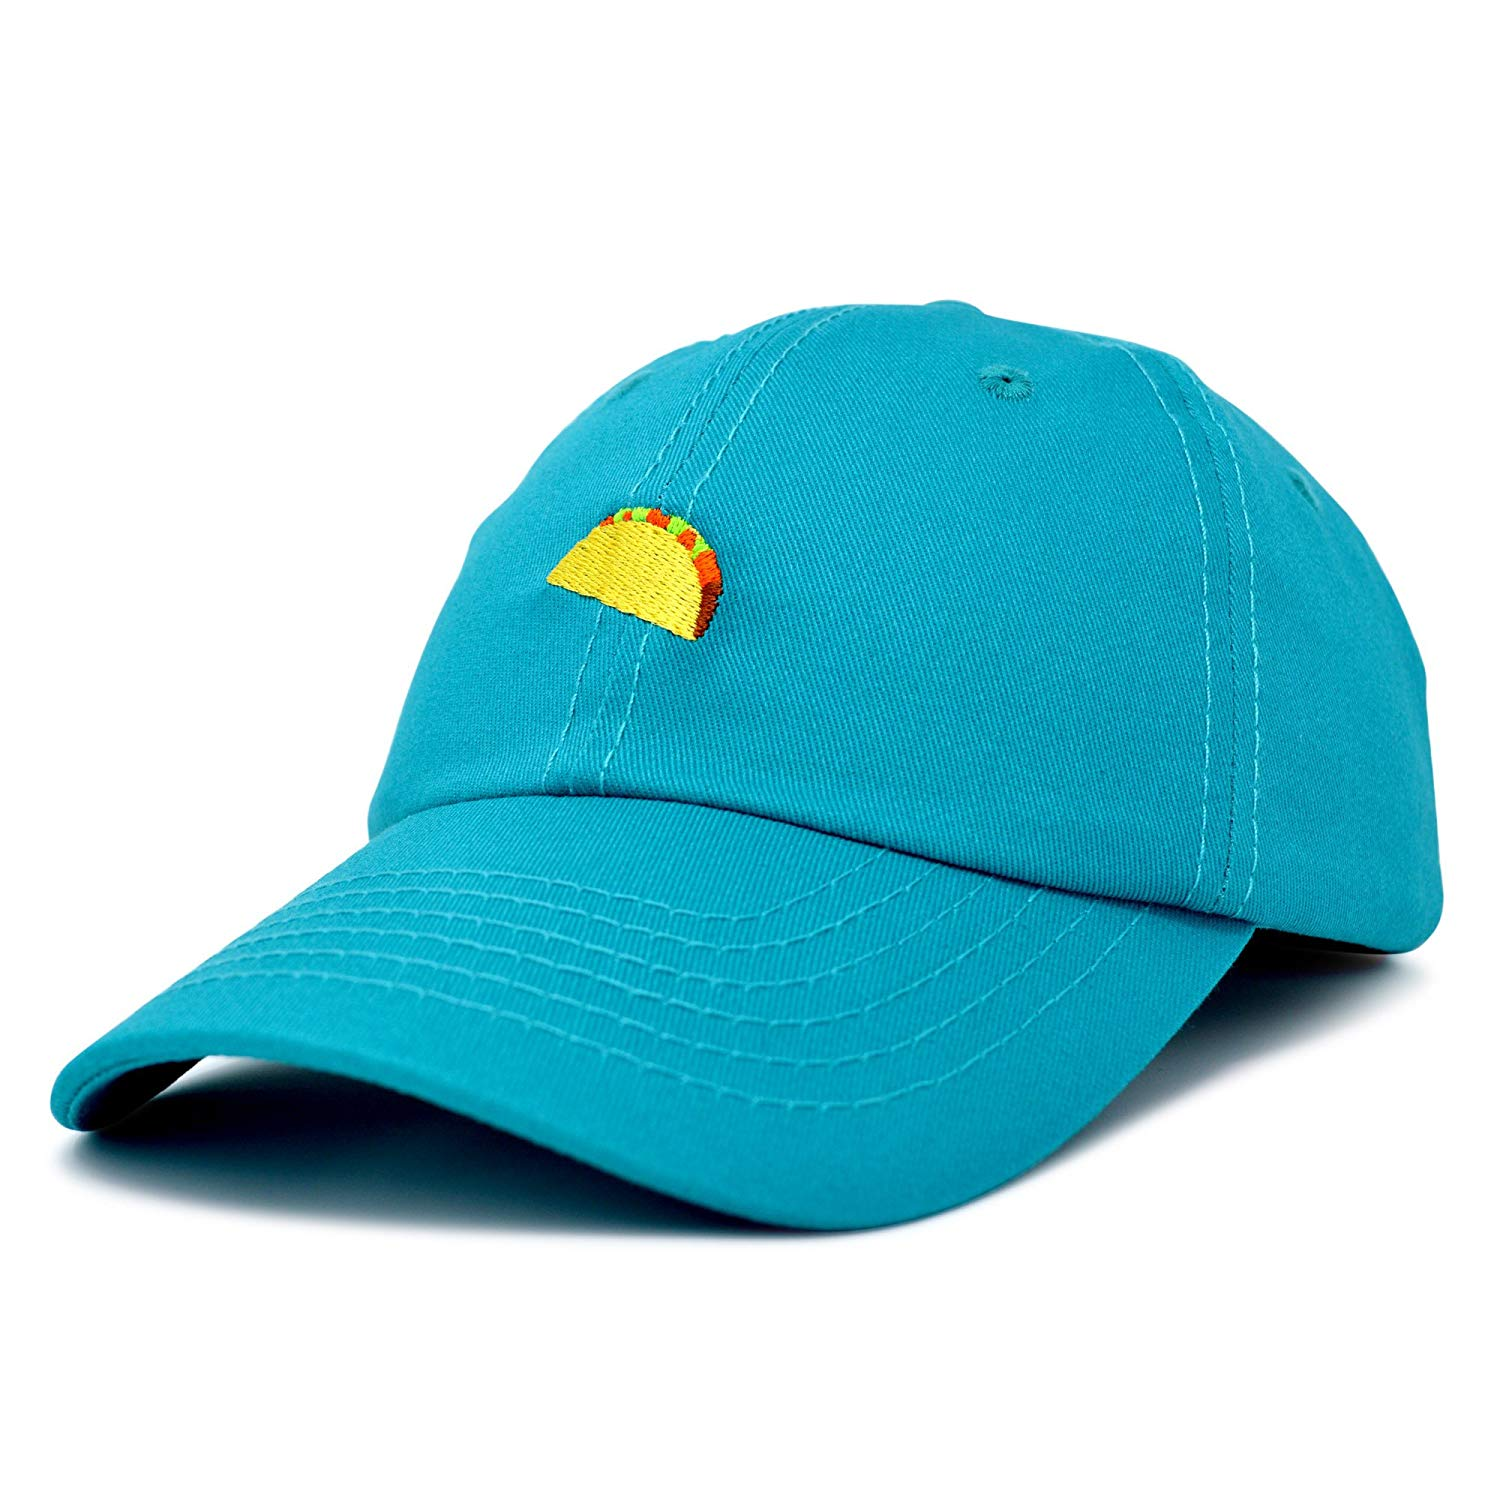 picture-of-taco-emoji-baseball-cap-photo